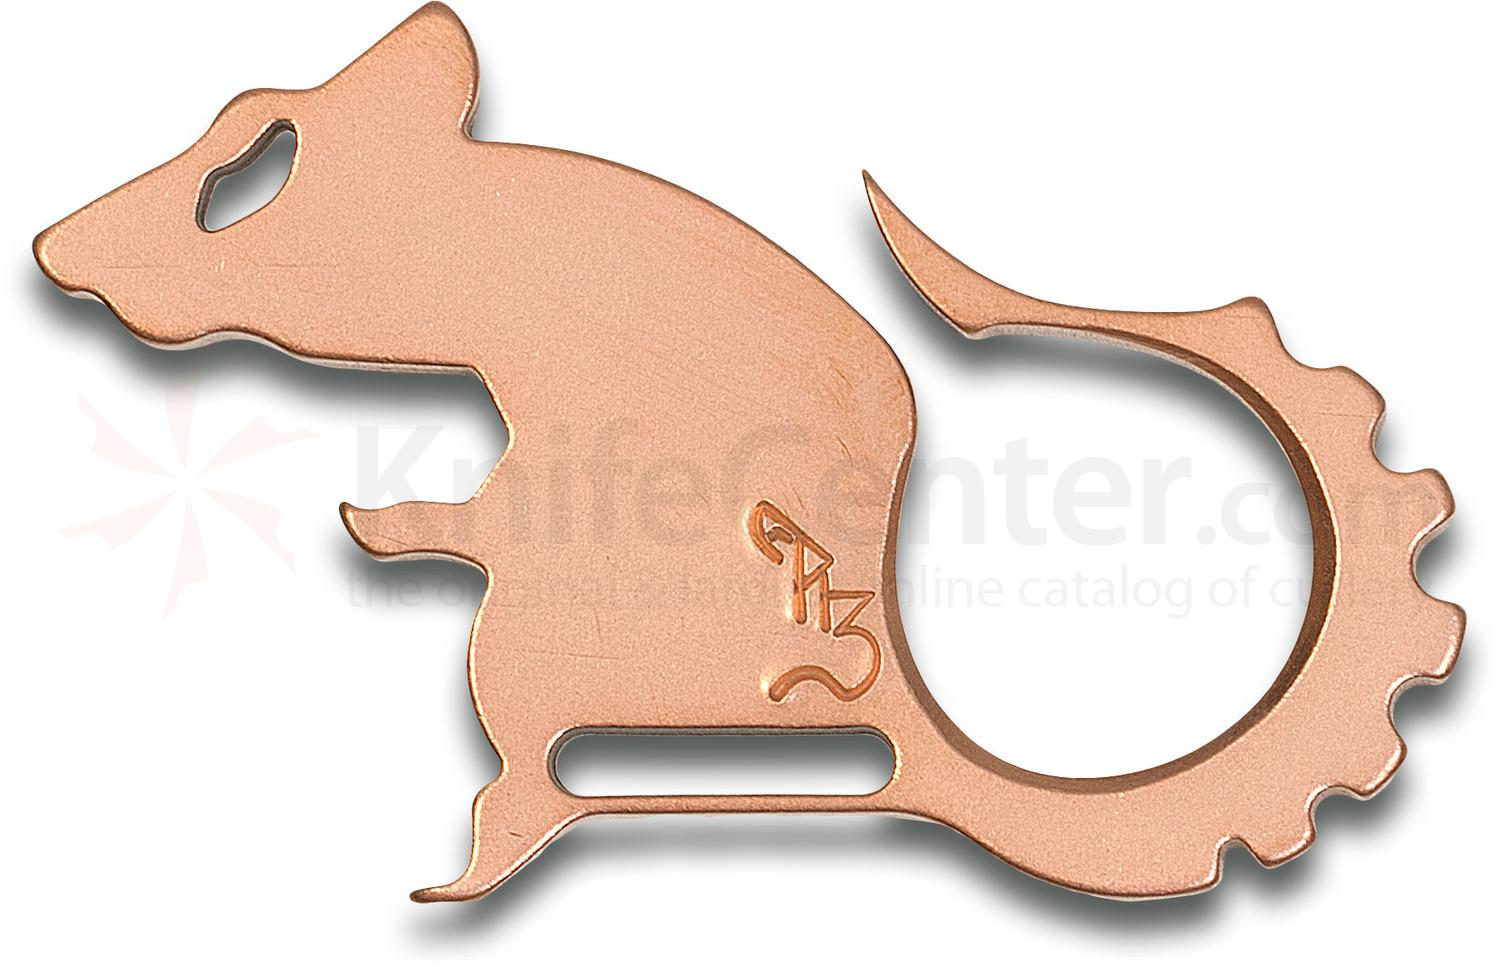 The Rat Bastard RB Tools and Design Tumbled Copper Rat Master Bottle Opener